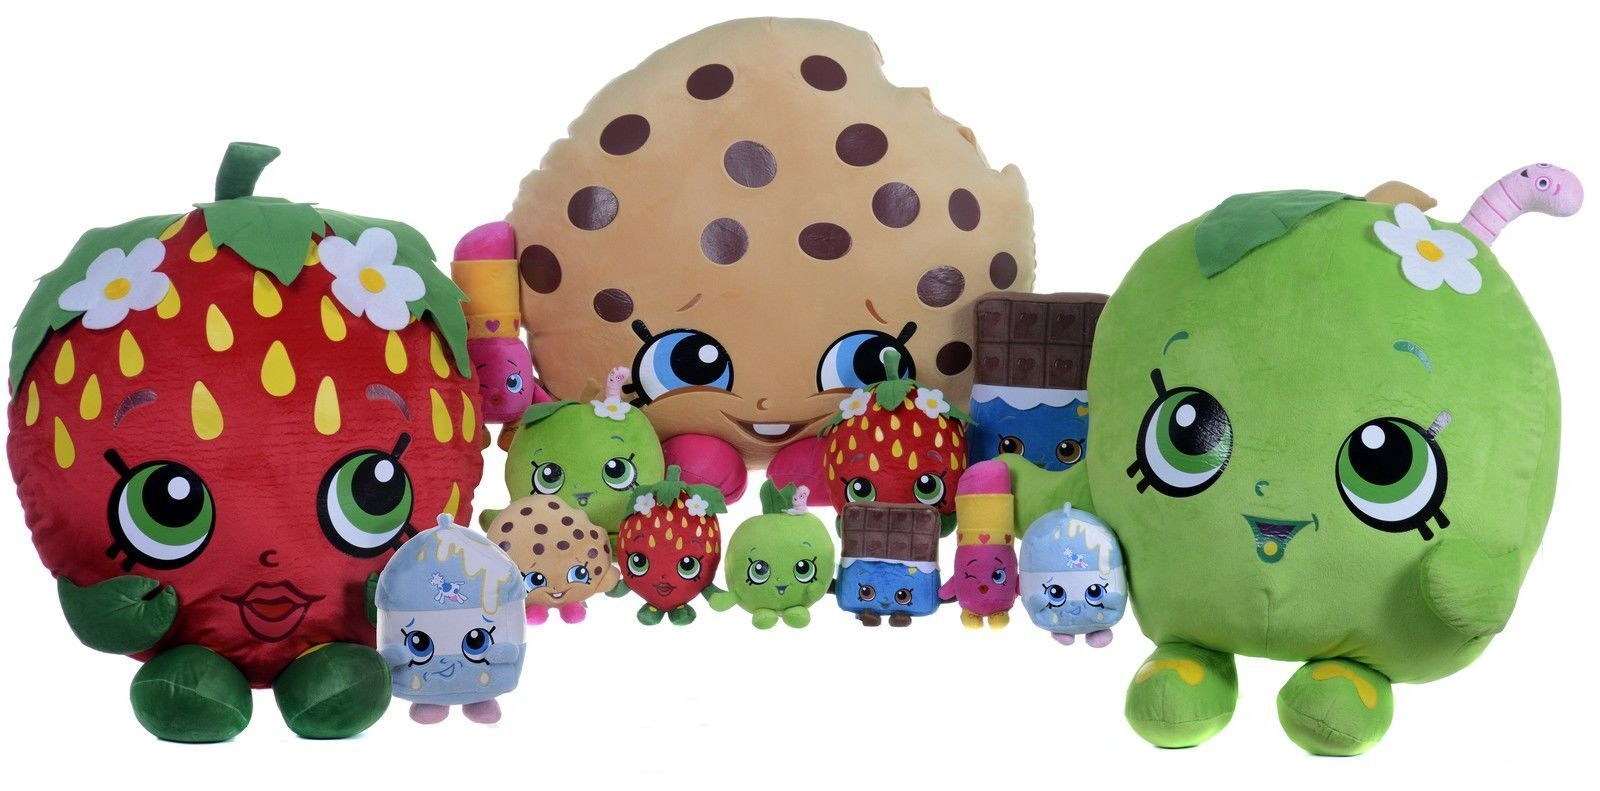 Official Shopkins Soft Toy Large Plush Toy Kiss Strawberry Kooky Cookie 10 inch